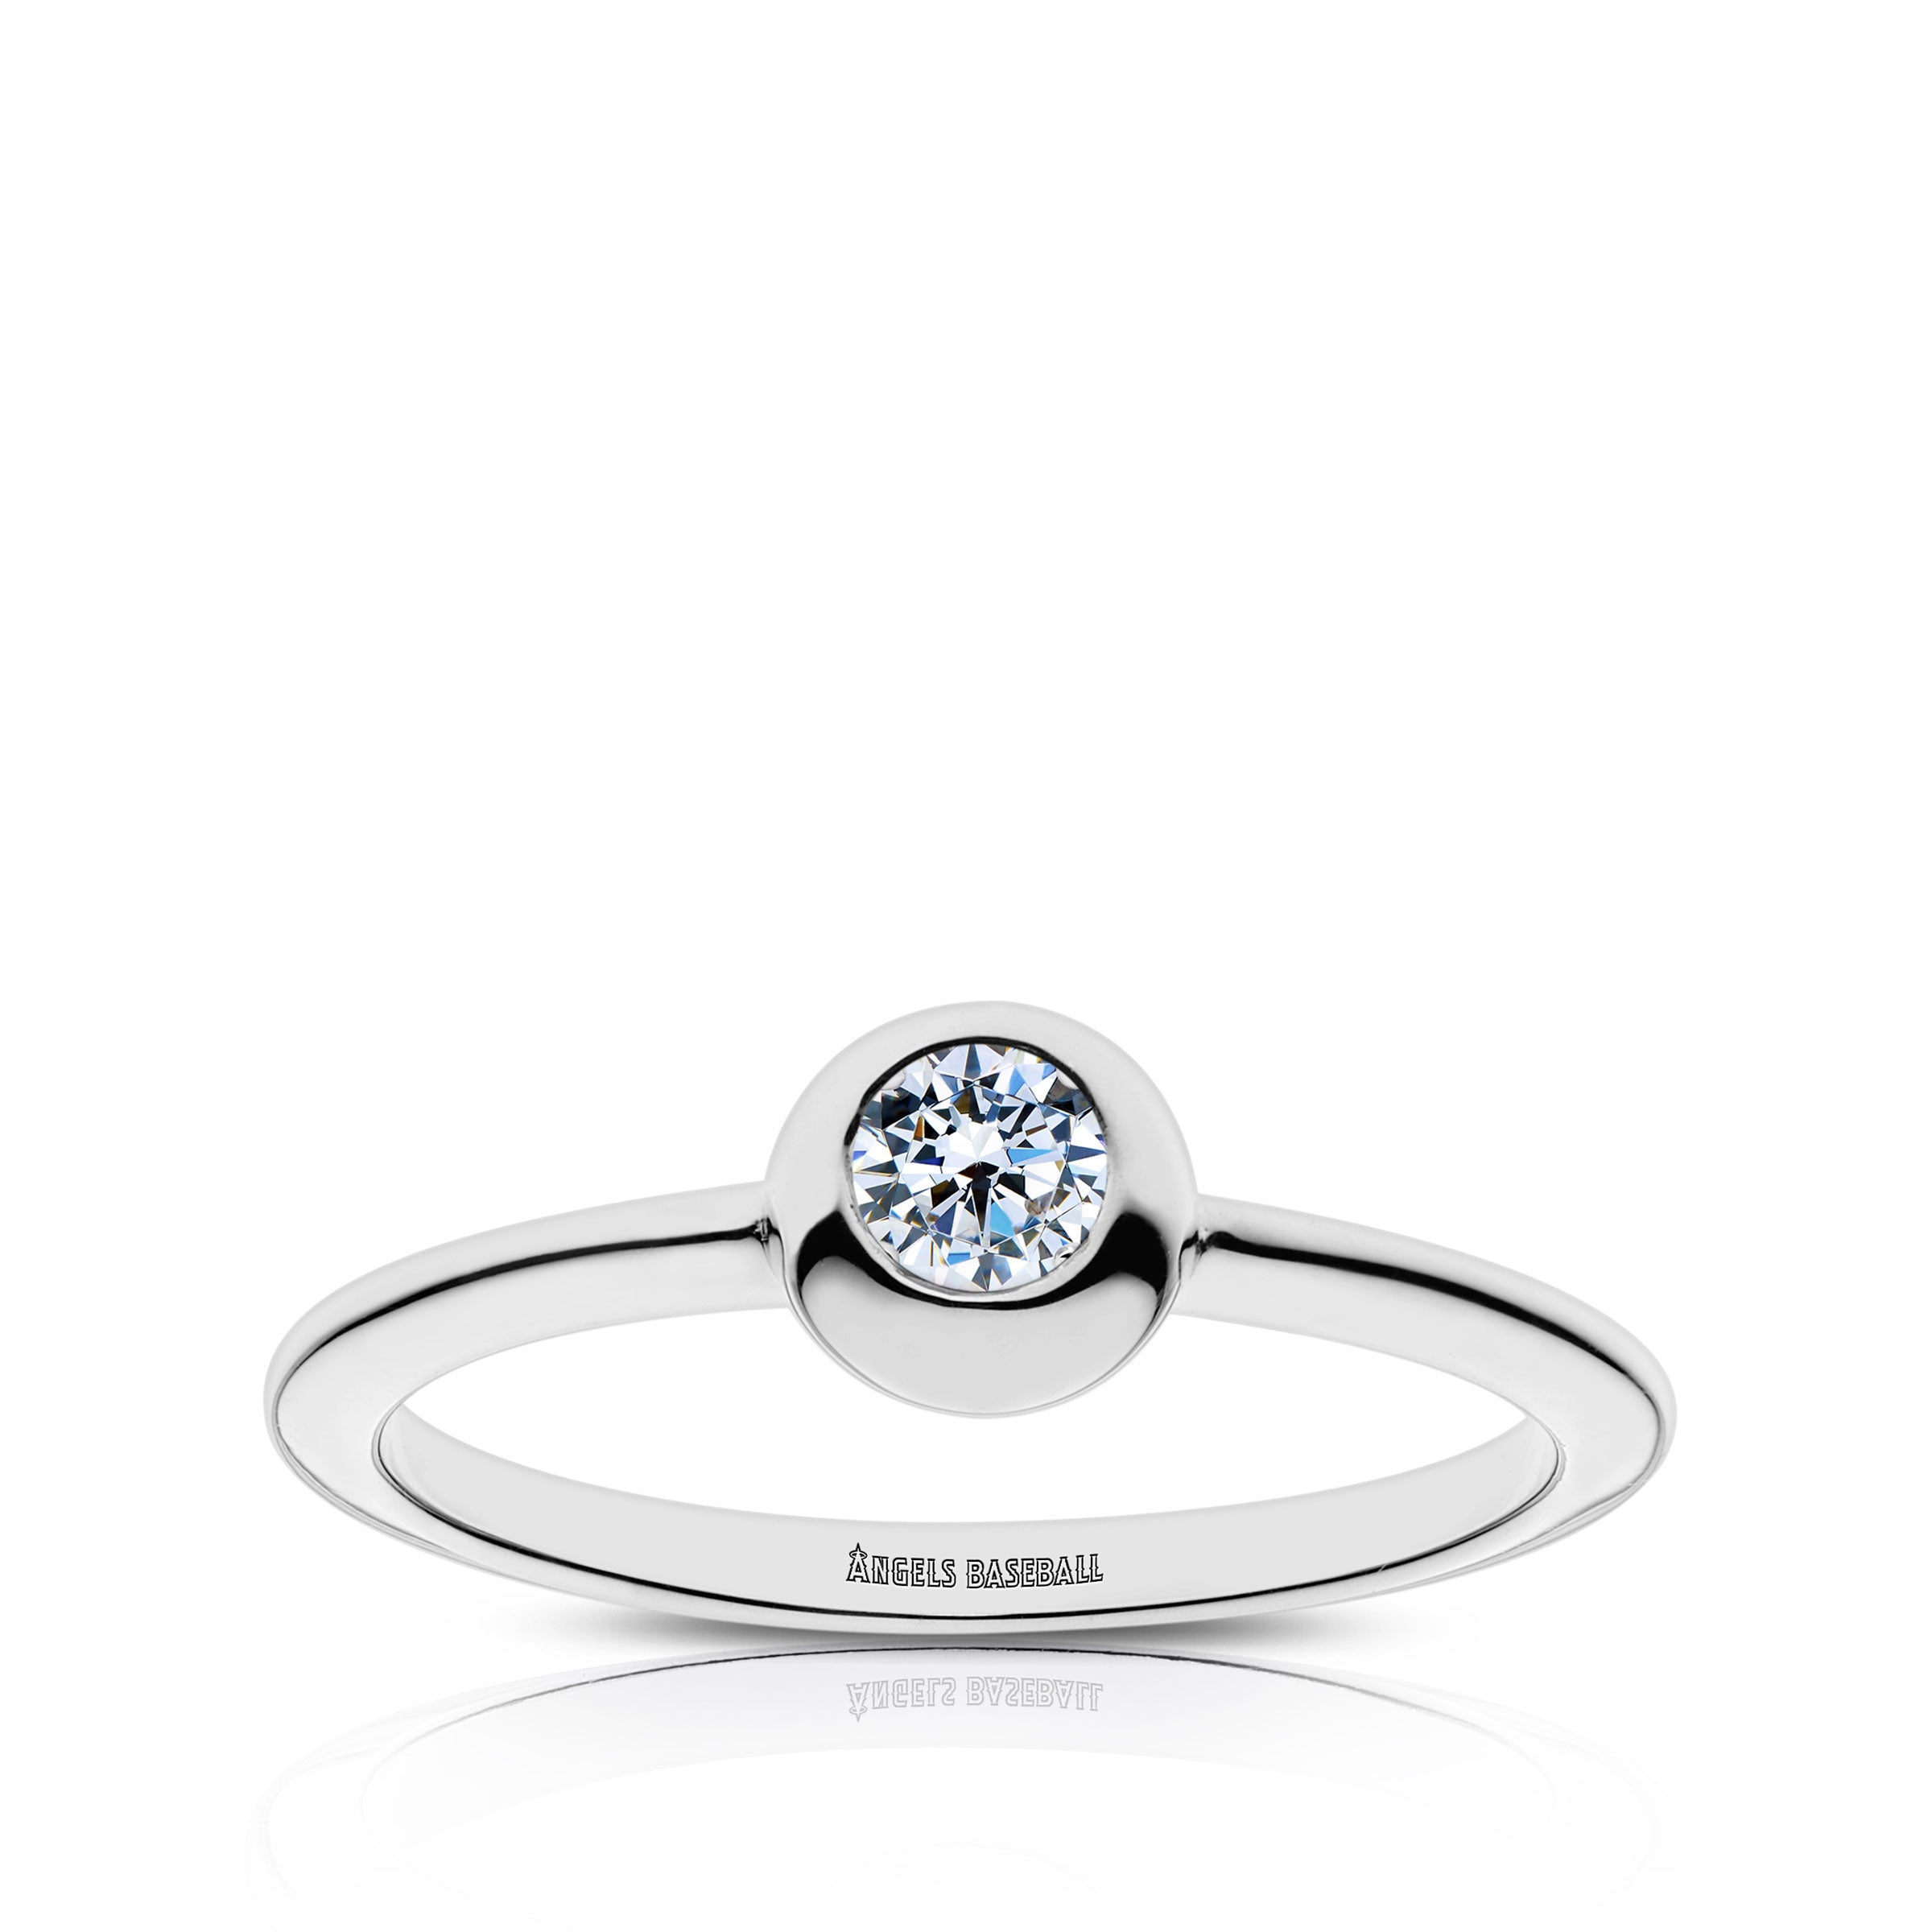 Los Angeles Engraved Diamond Ring Size 5